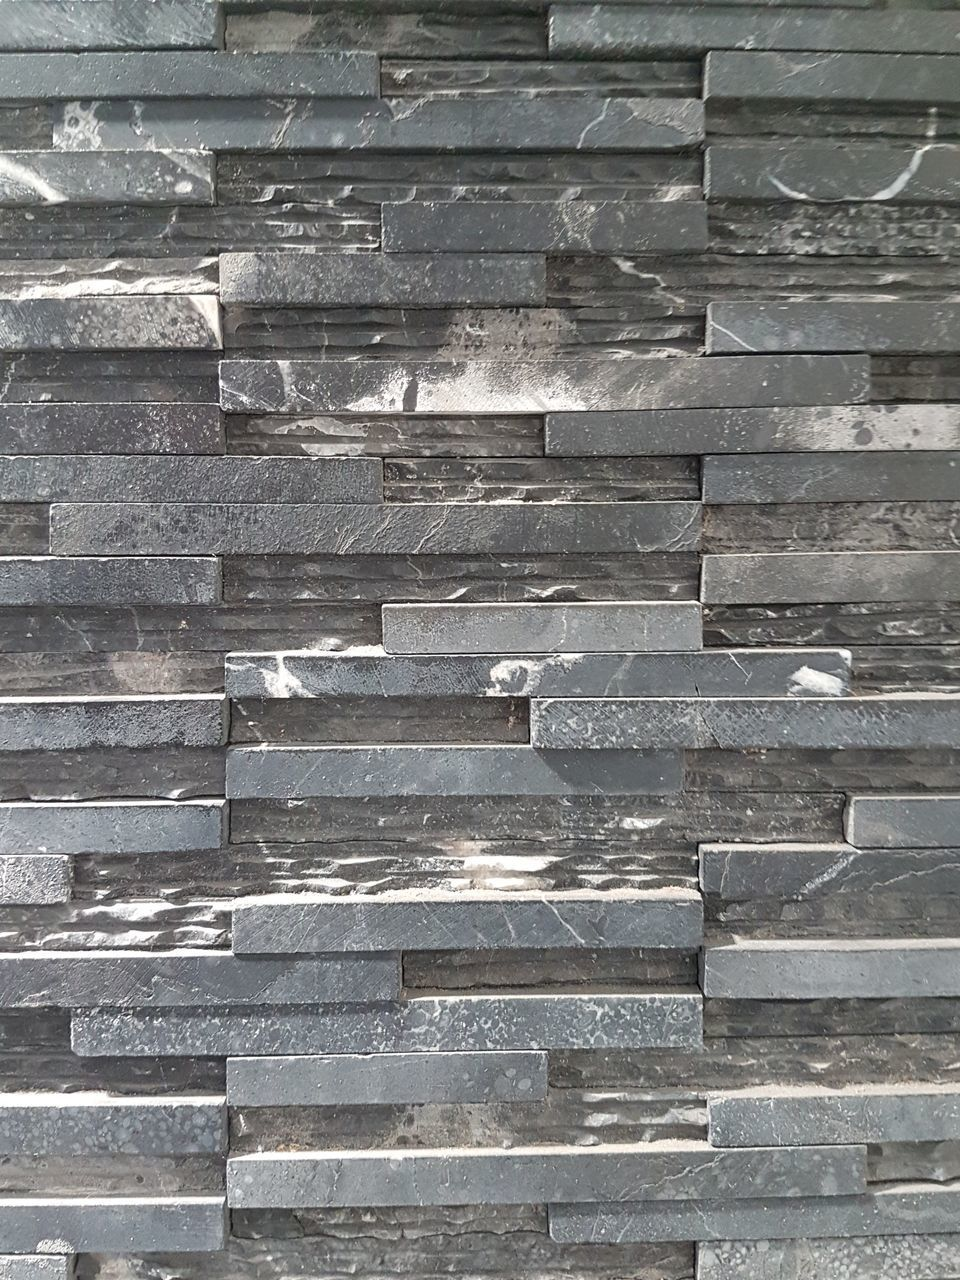 backgrounds, pattern, textured, full frame, no people, wood - material, wall - building feature, close-up, day, rough, flooring, wood, plank, architecture, repetition, gray, weathered, built structure, in a row, old, outdoors, dirty, wood grain, textured effect, surface level, concrete